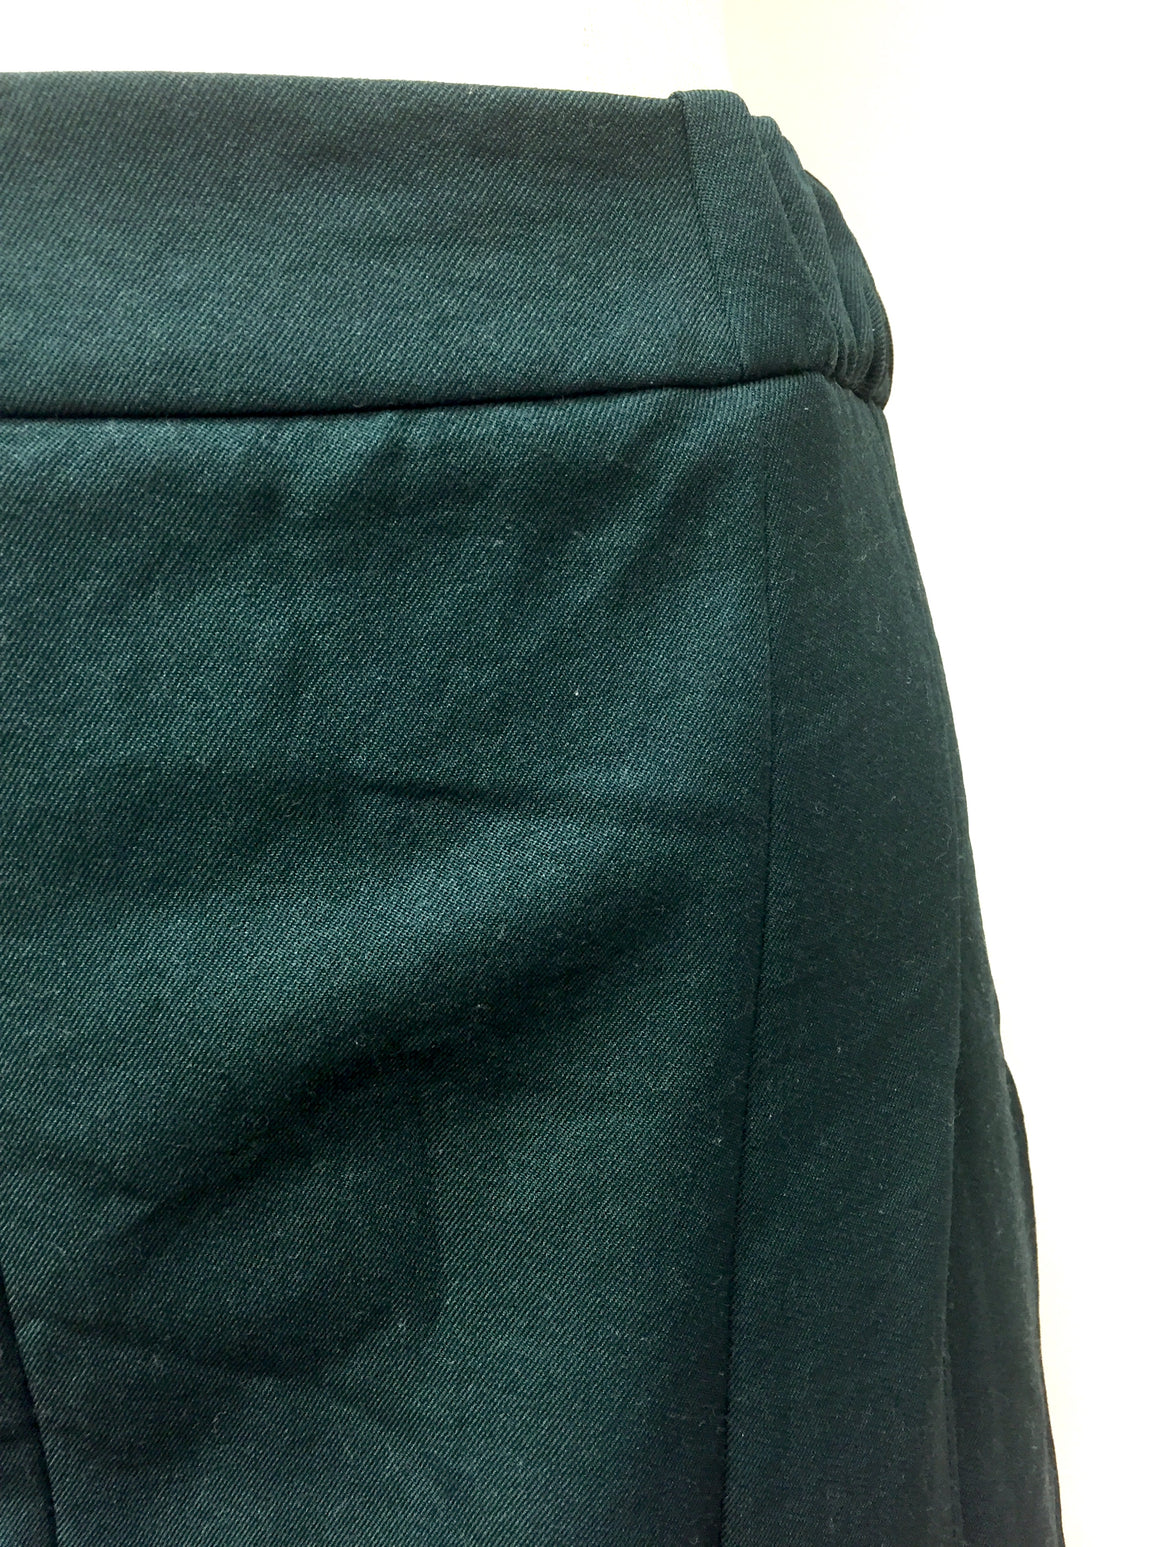 MARNI Forest-Green Crushed Poly-Blend Pleated A-Line Skirt Sz42/8